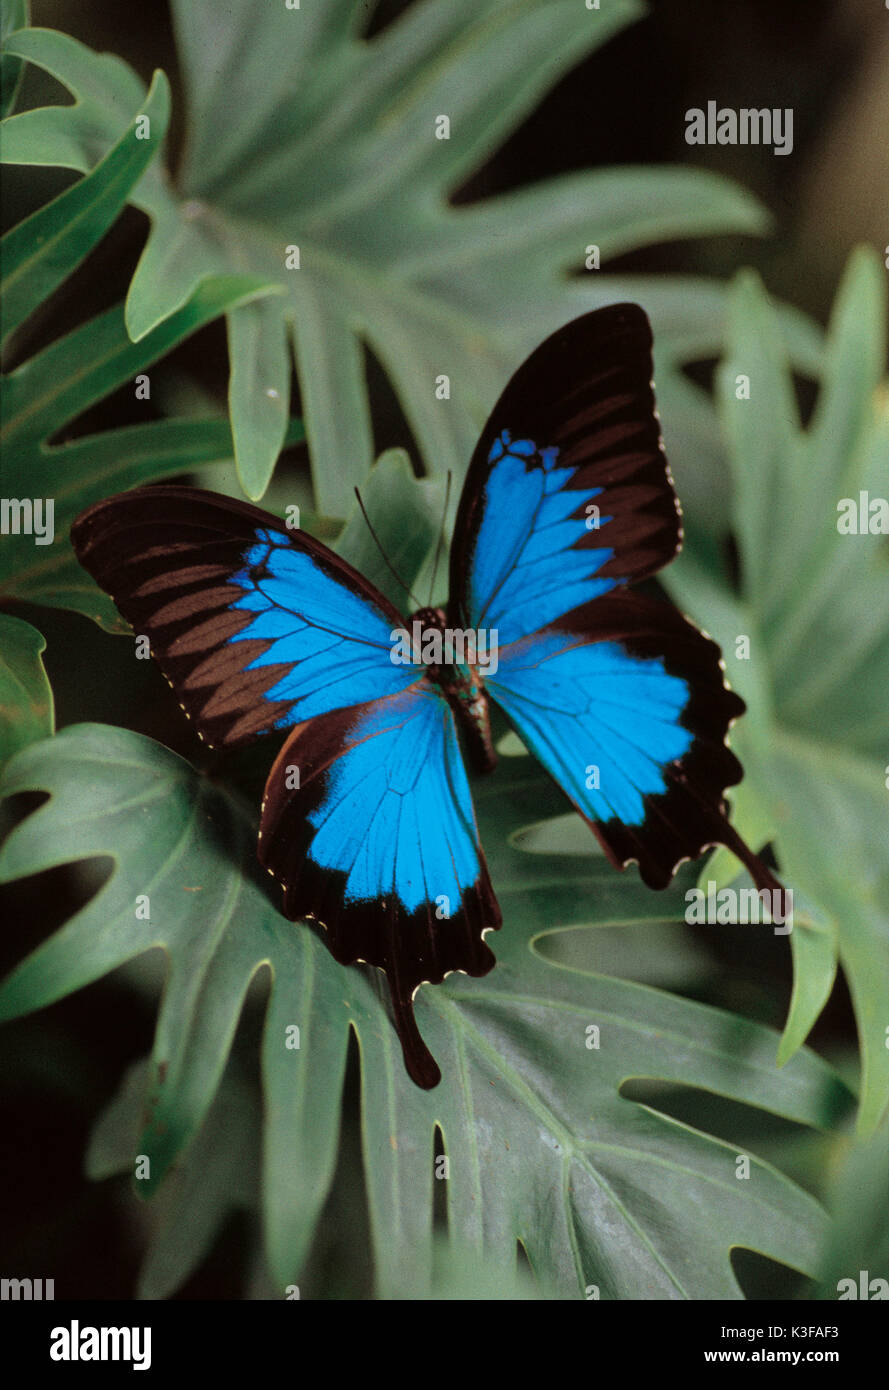 Butterfly on leaves / Papilionidae montronzieri - Stock Image